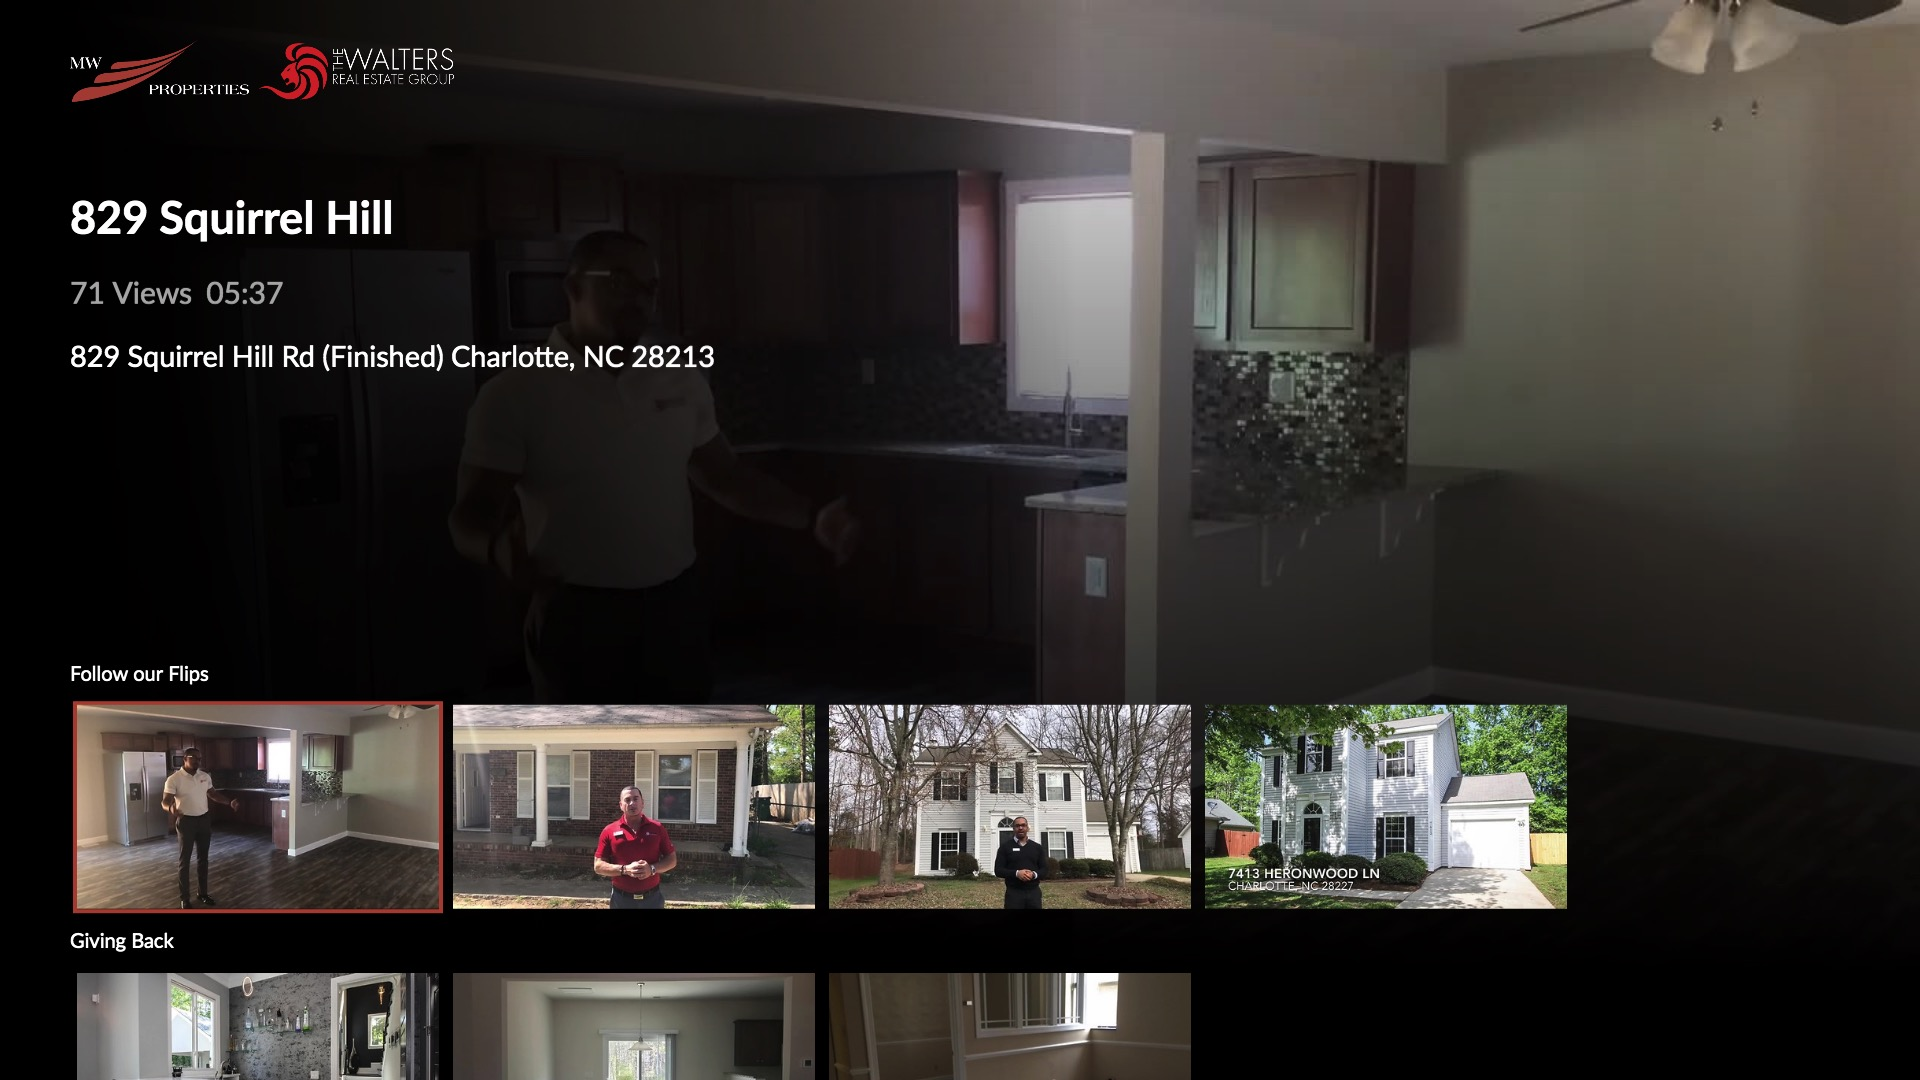 The Walters Real Estate Group Screenshot 002